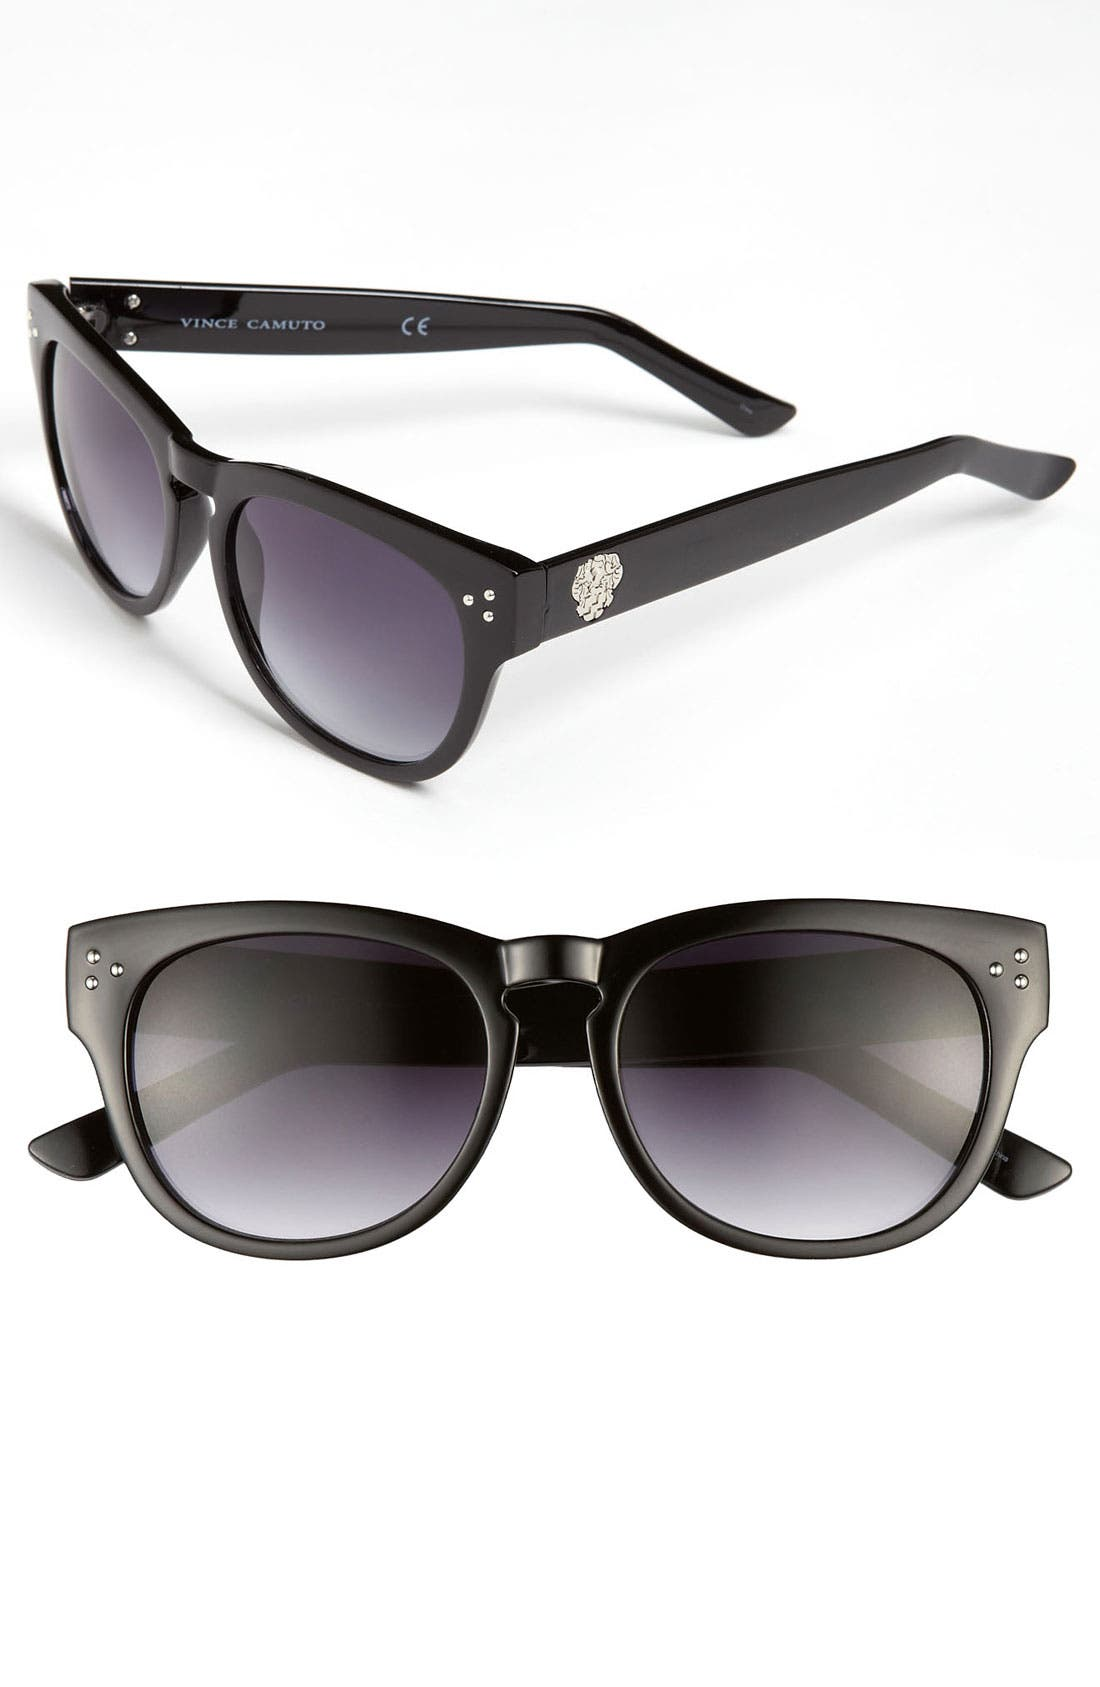 Main Image - Vince Camuto 55mm Sunglasses